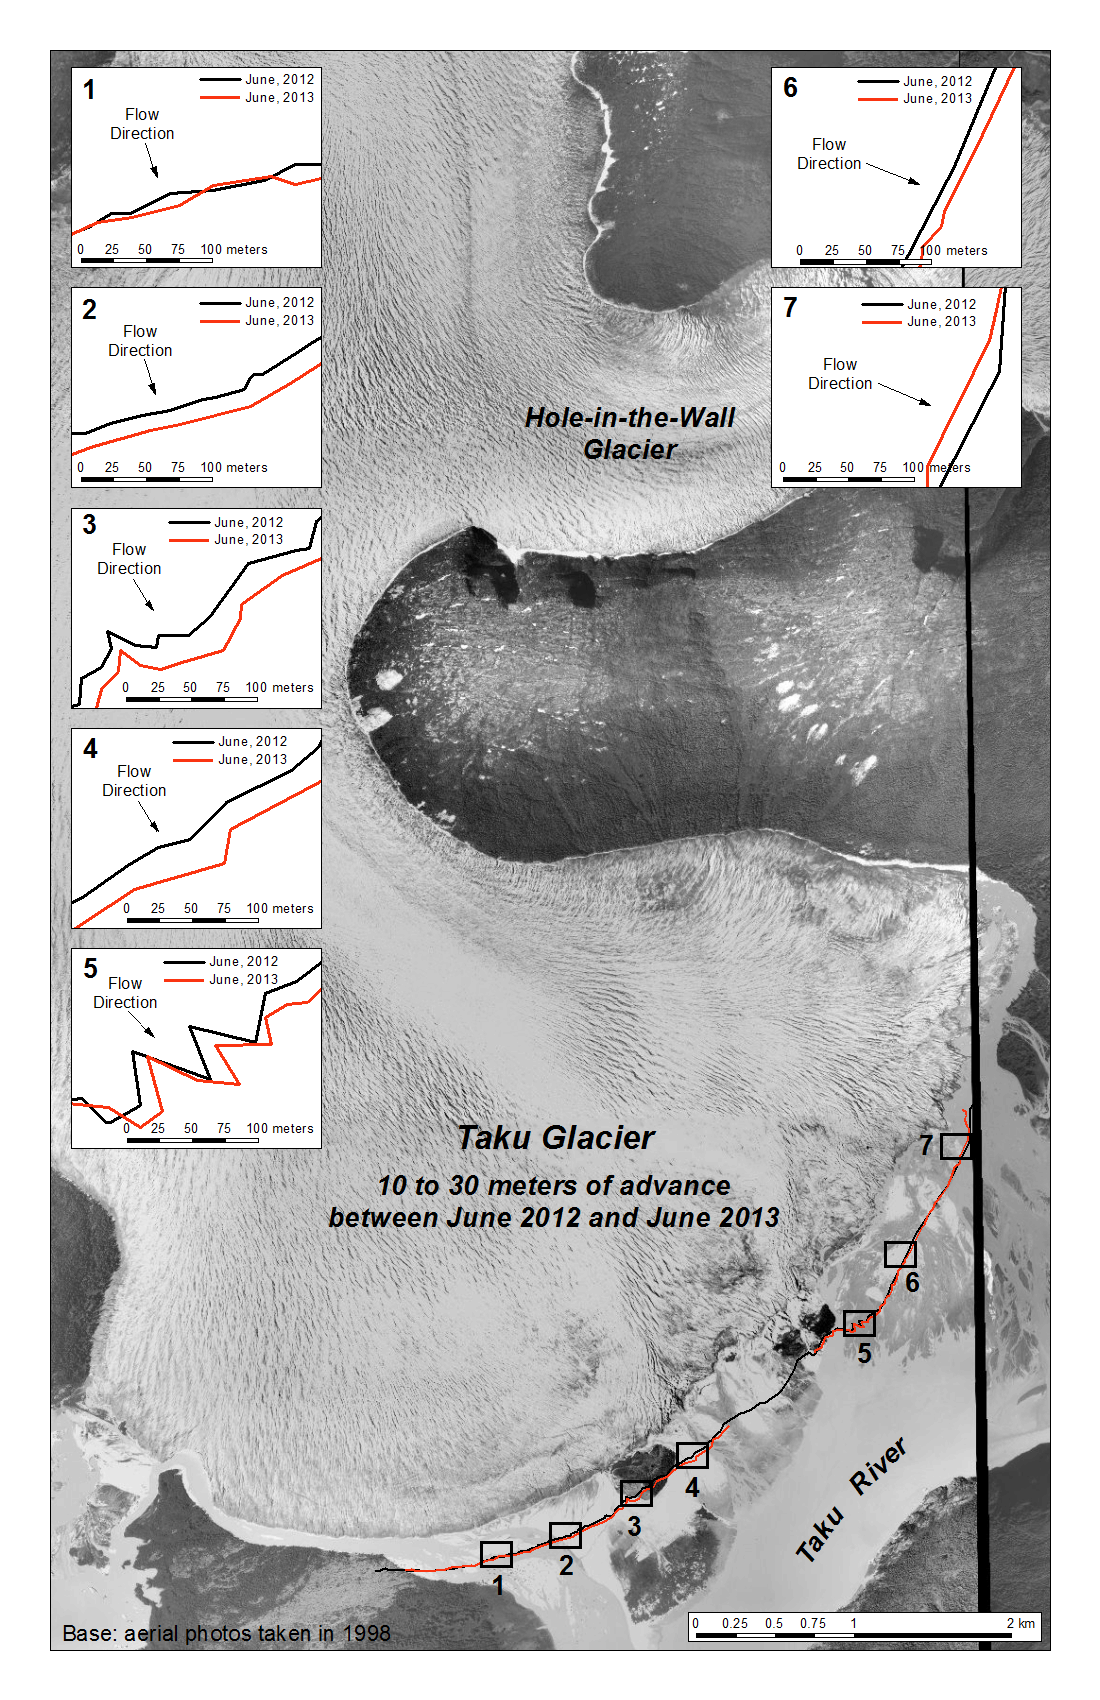 Taku Glacier Map, with details shown as insets. In all images, North is upward. Over the central portion of the glacier terminus (Insets 2 – 6), the glacier advanced 10—30 meters (35—100 feet) between the 2012 and 2013 observations. Nearer the margins (Insets 1 and 7), the advance is less pronounced. At Inset 1 near the western edge, little to no advance was seen. In the location of Inset 7, the ice margin retreated approximately 20 meters (65 feet). A new meltwater stream established itself here between 2012 and 2013; this water flow seems to have contributed to greater ice erosion.  Figure by Scott McGee